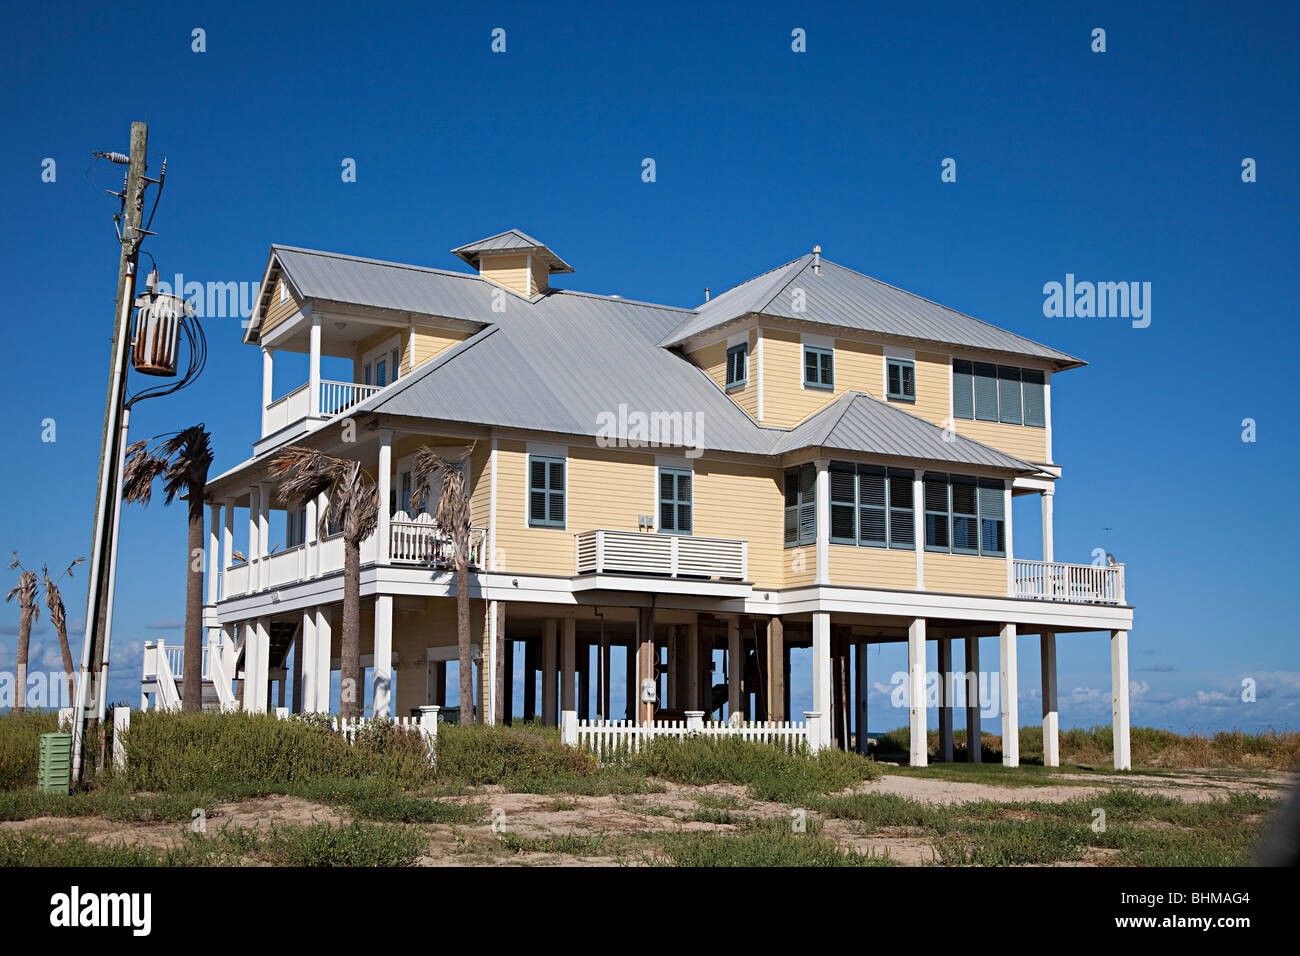 wooden house on stilts on beach front galveston texas usa